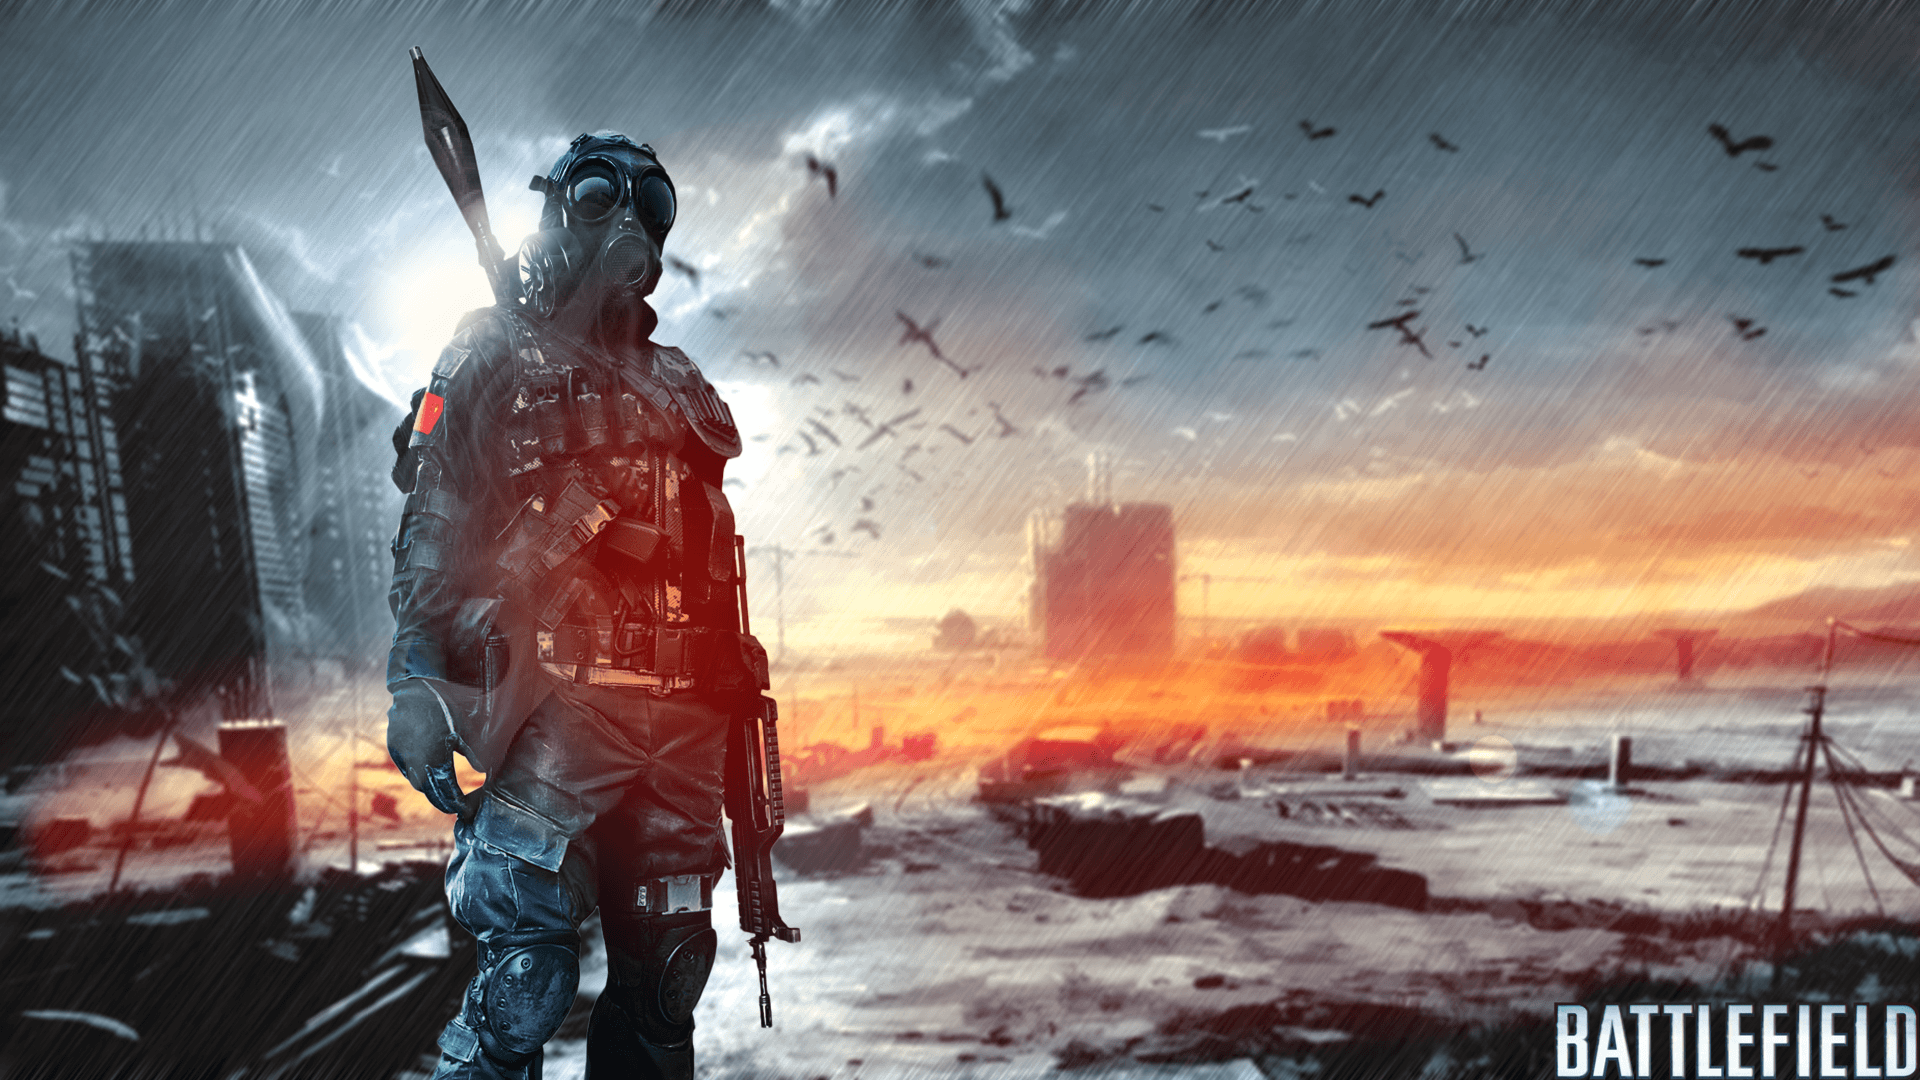 battlefield 5 wallpapers - wallpaper cave